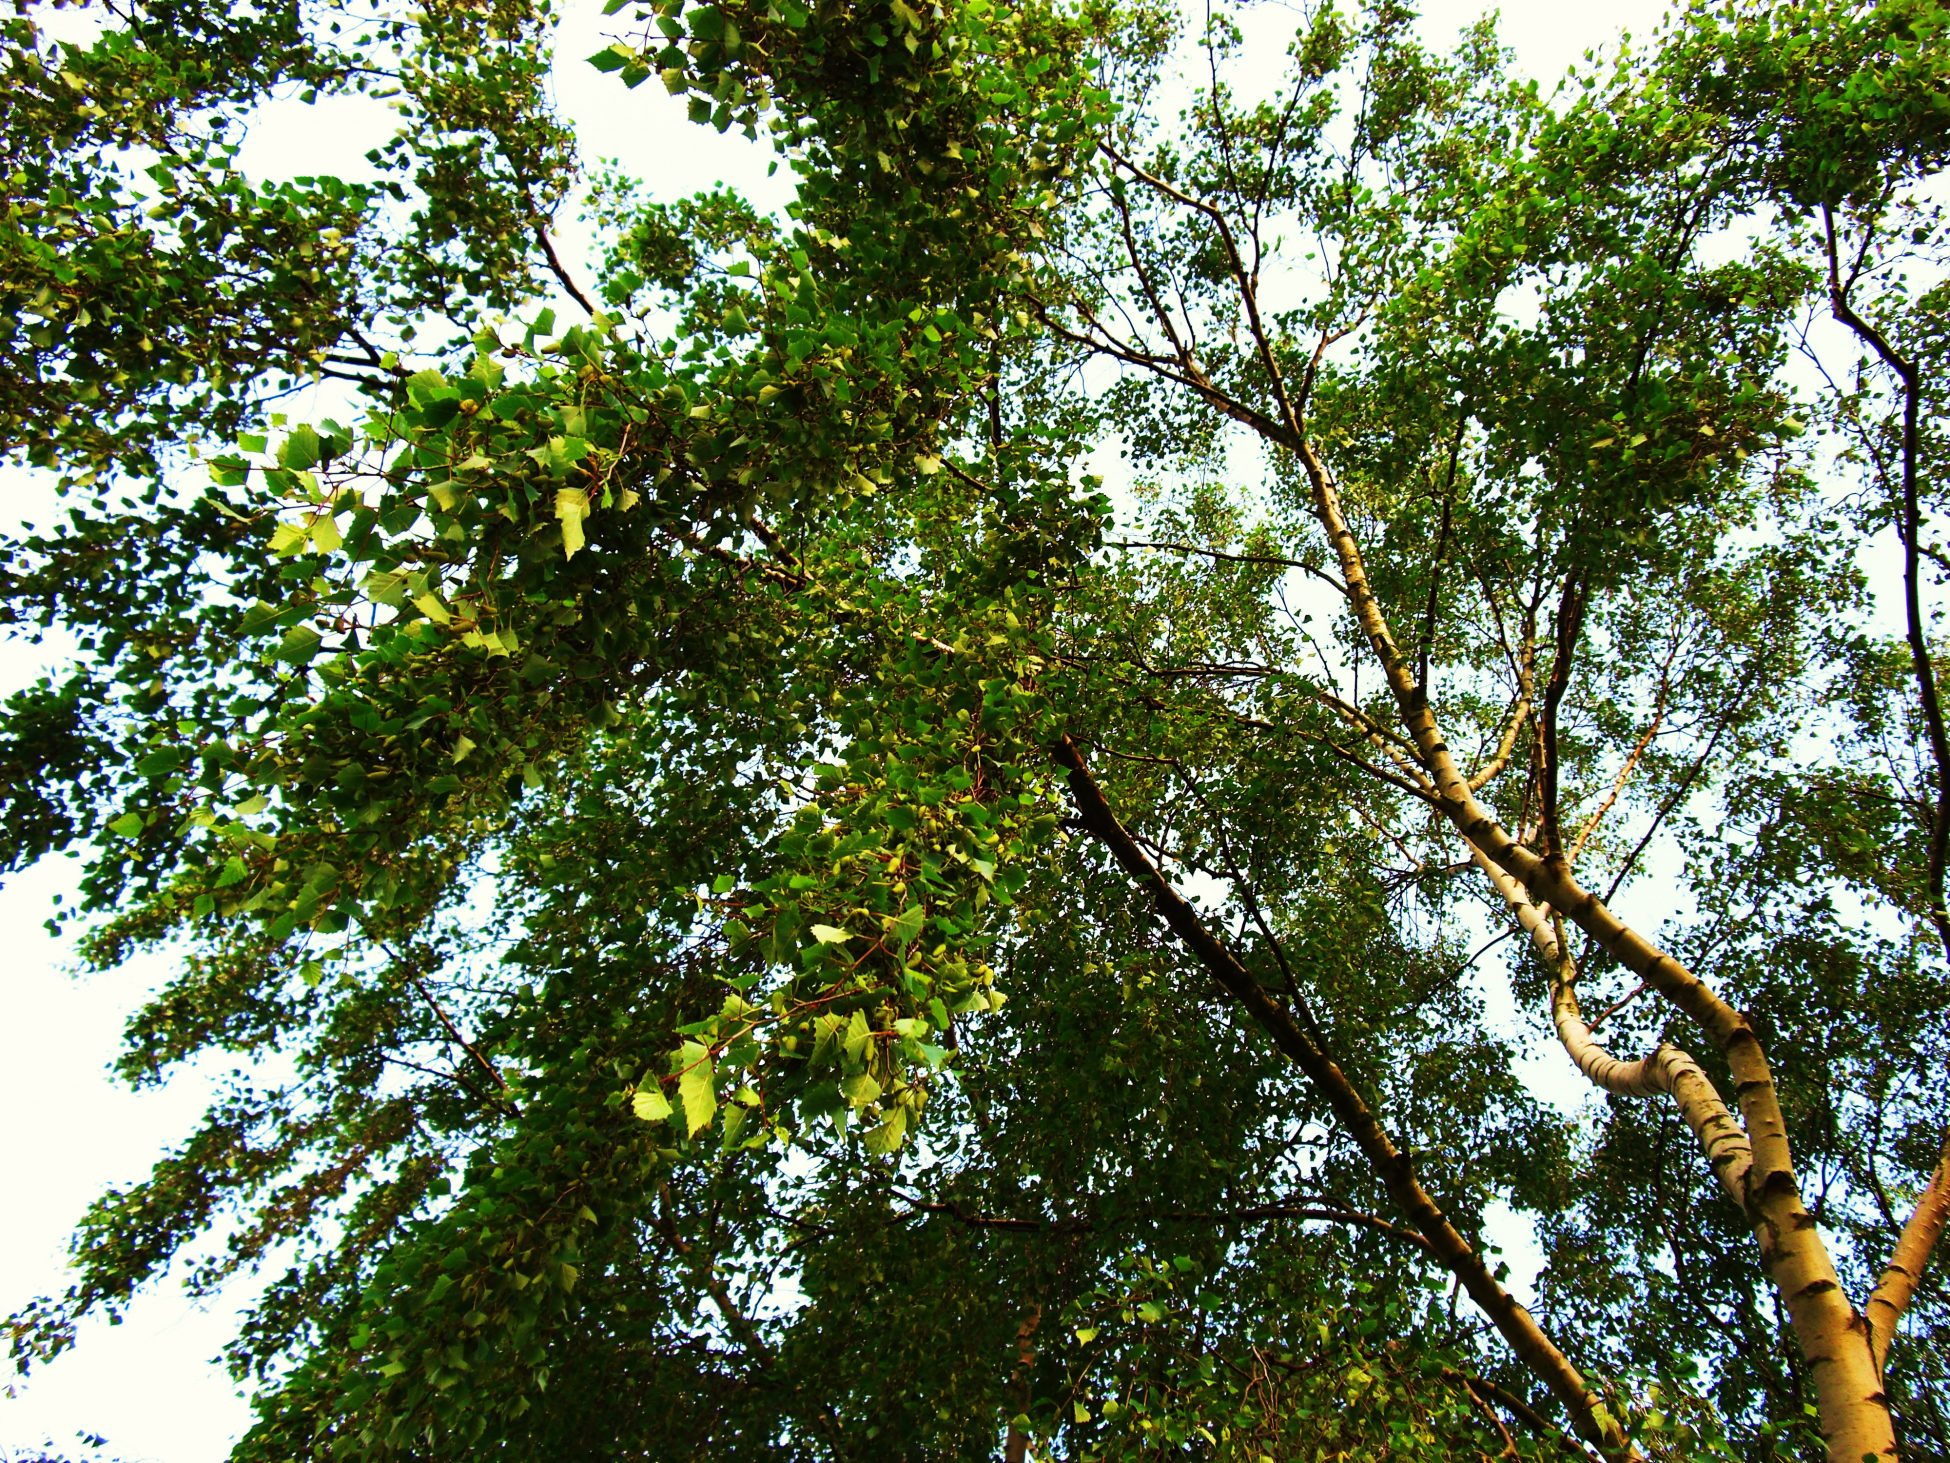 Photo taken from below of tree branches and green leaves looking up at the sky